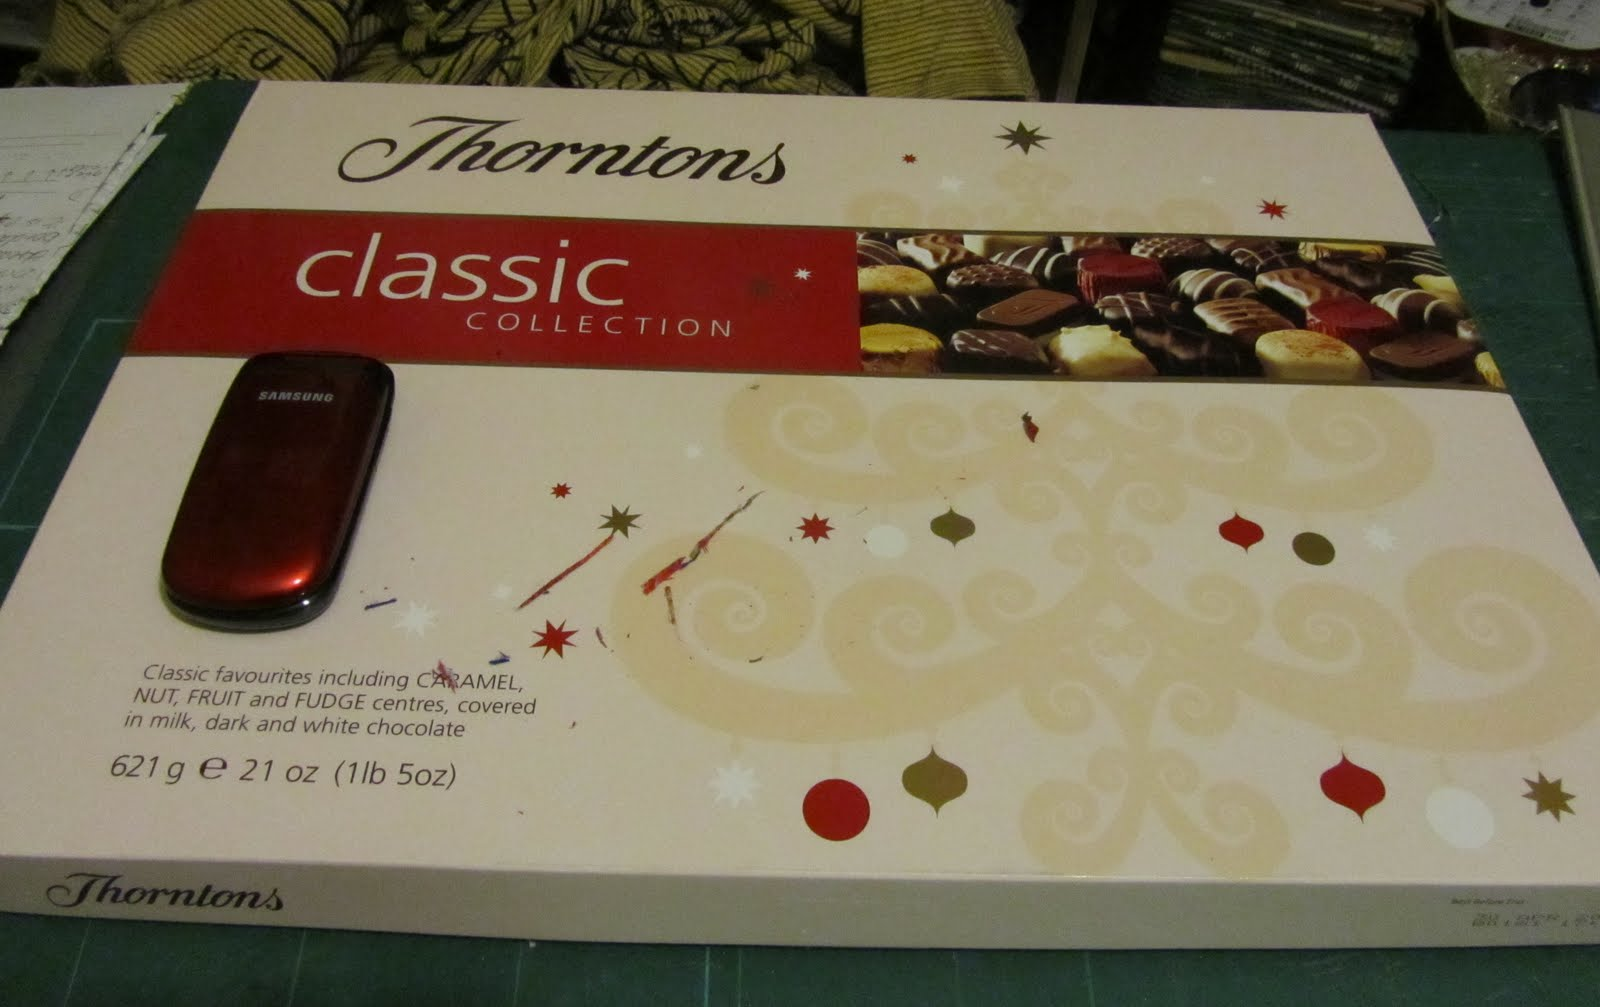 Thorntons Chocolates Tesco